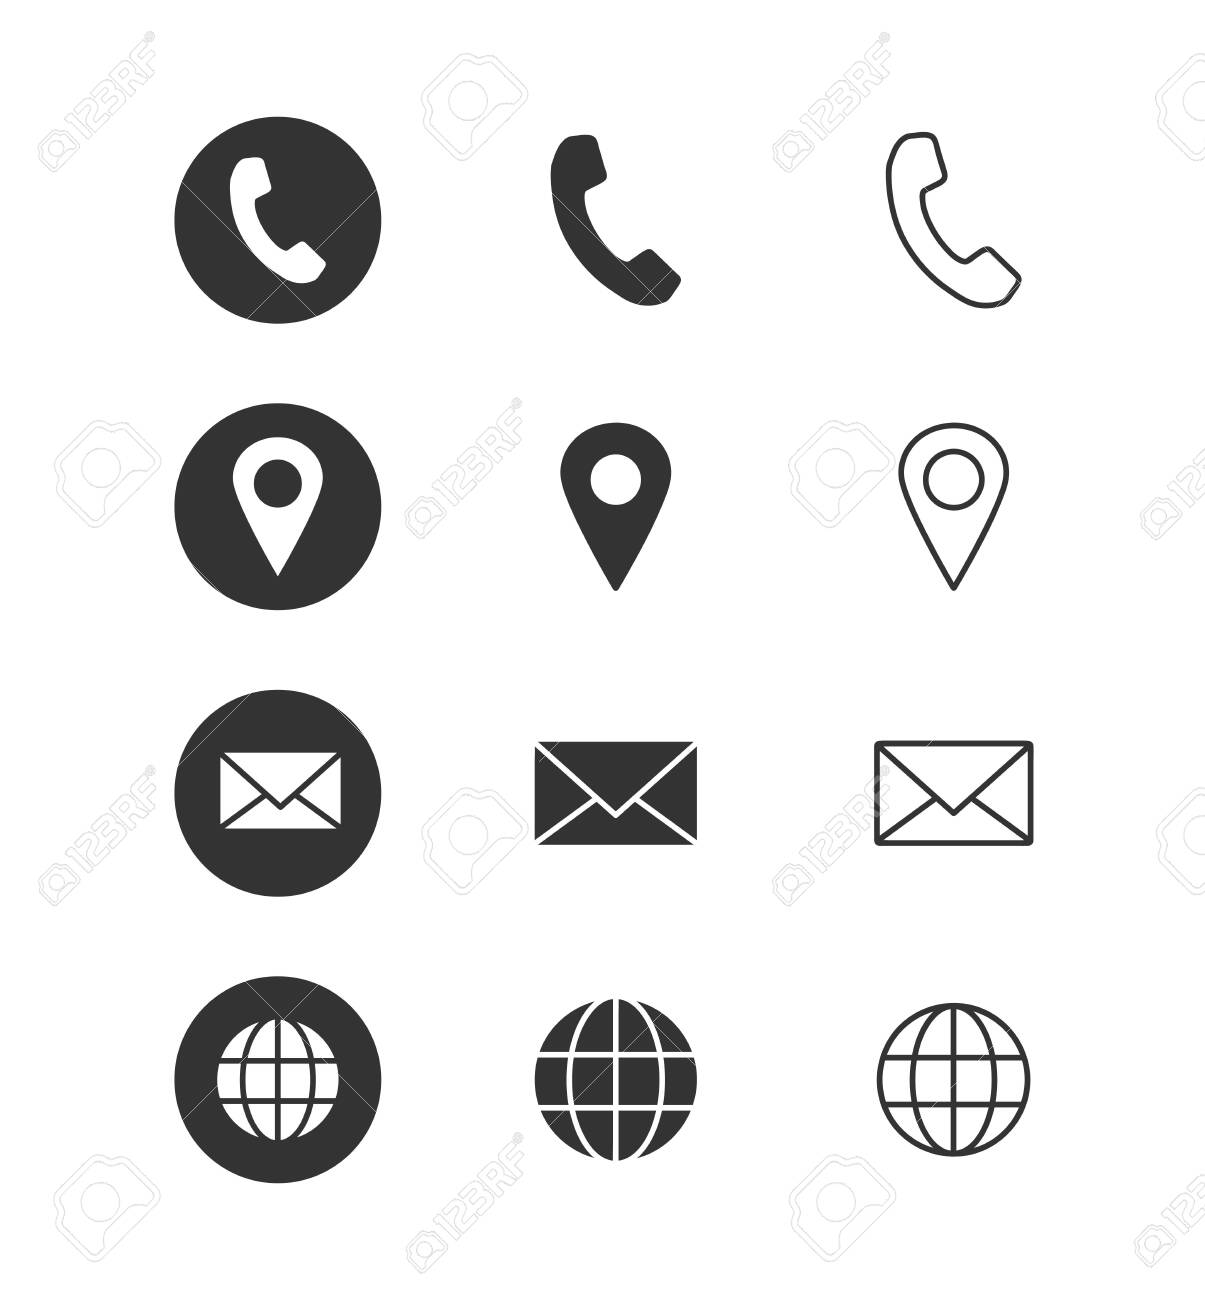 Contact info - icon set. Isolated on white background. Vector illustration. - 138457340